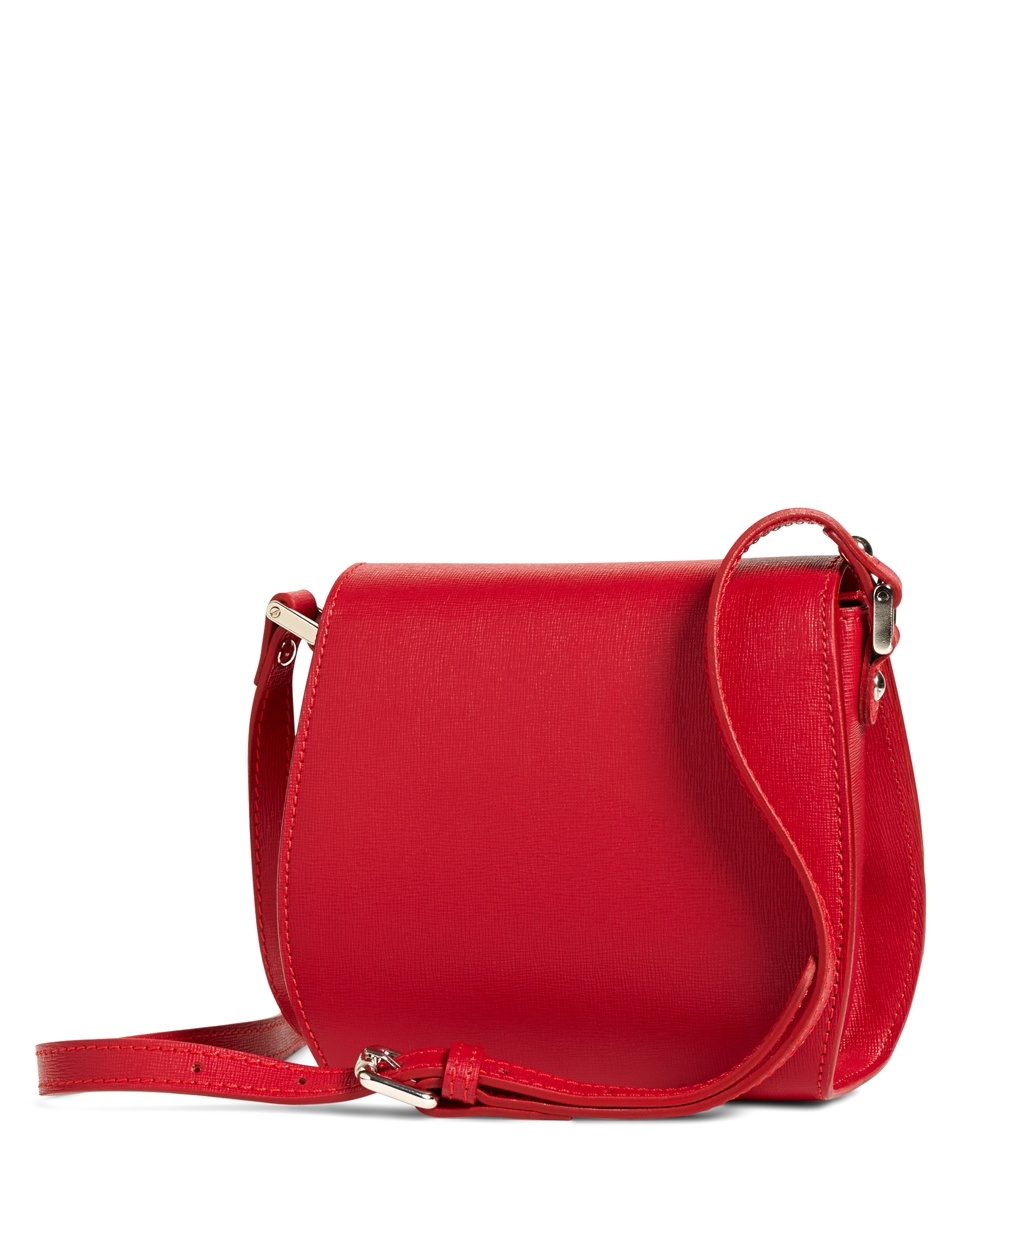 Brooks brothers Leather Crossbody Bag in Red | Lyst